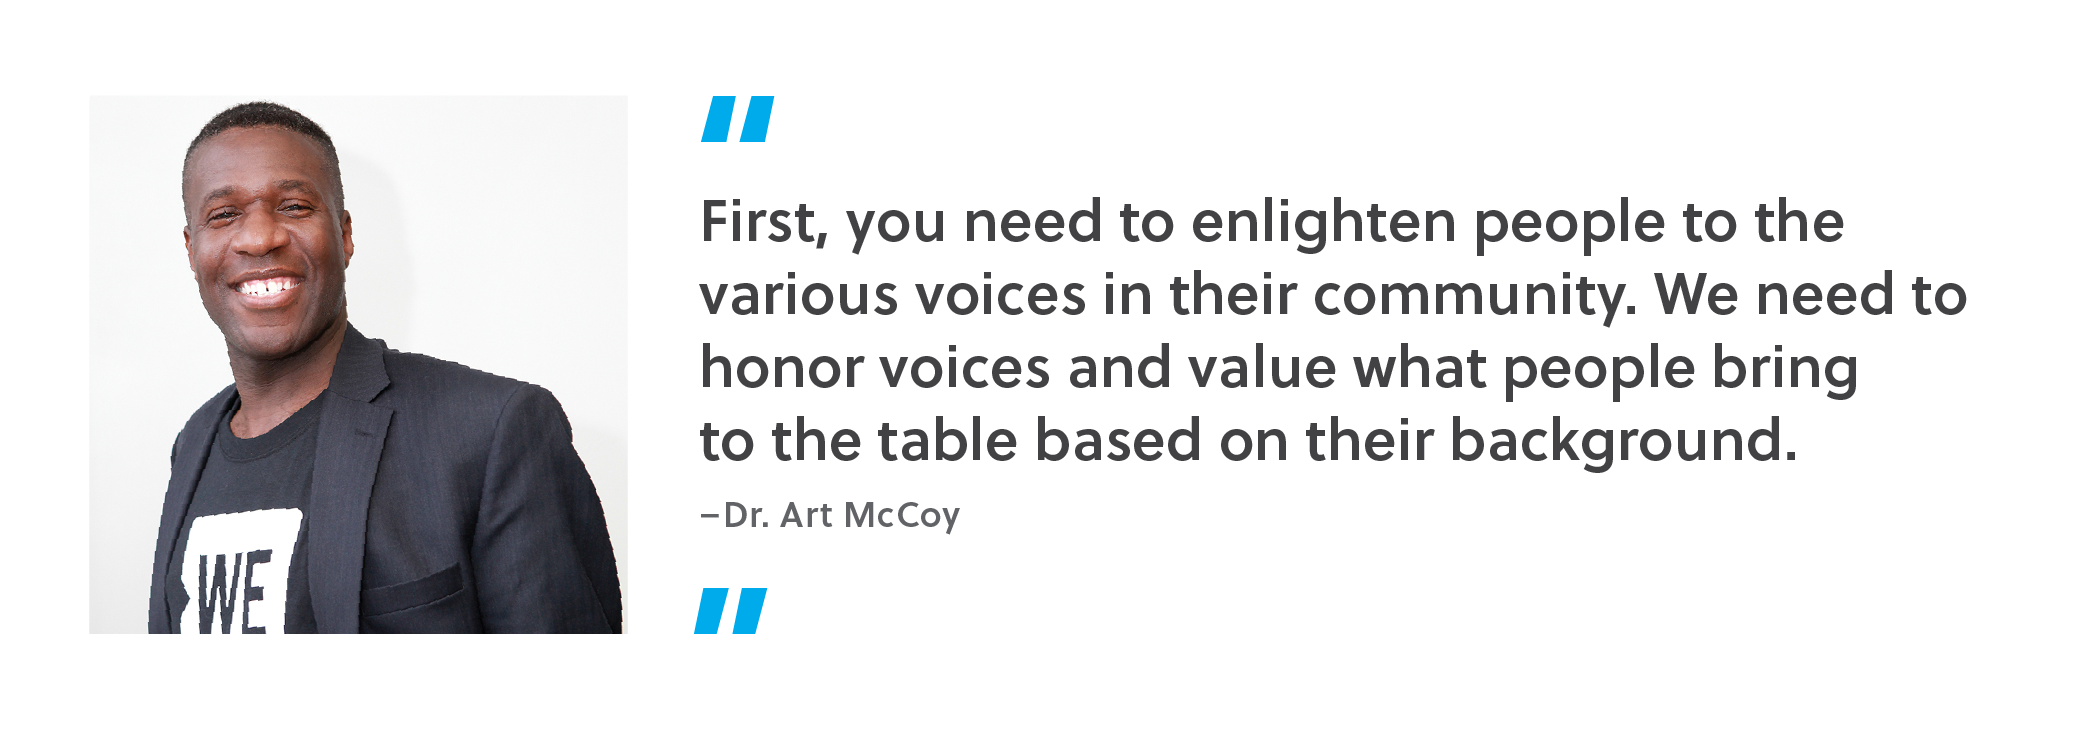 First, you need to enlighten people to the various voices in their community. We need to honor voices and value what people bring to the table based on their background. - Dr. Art McCoy